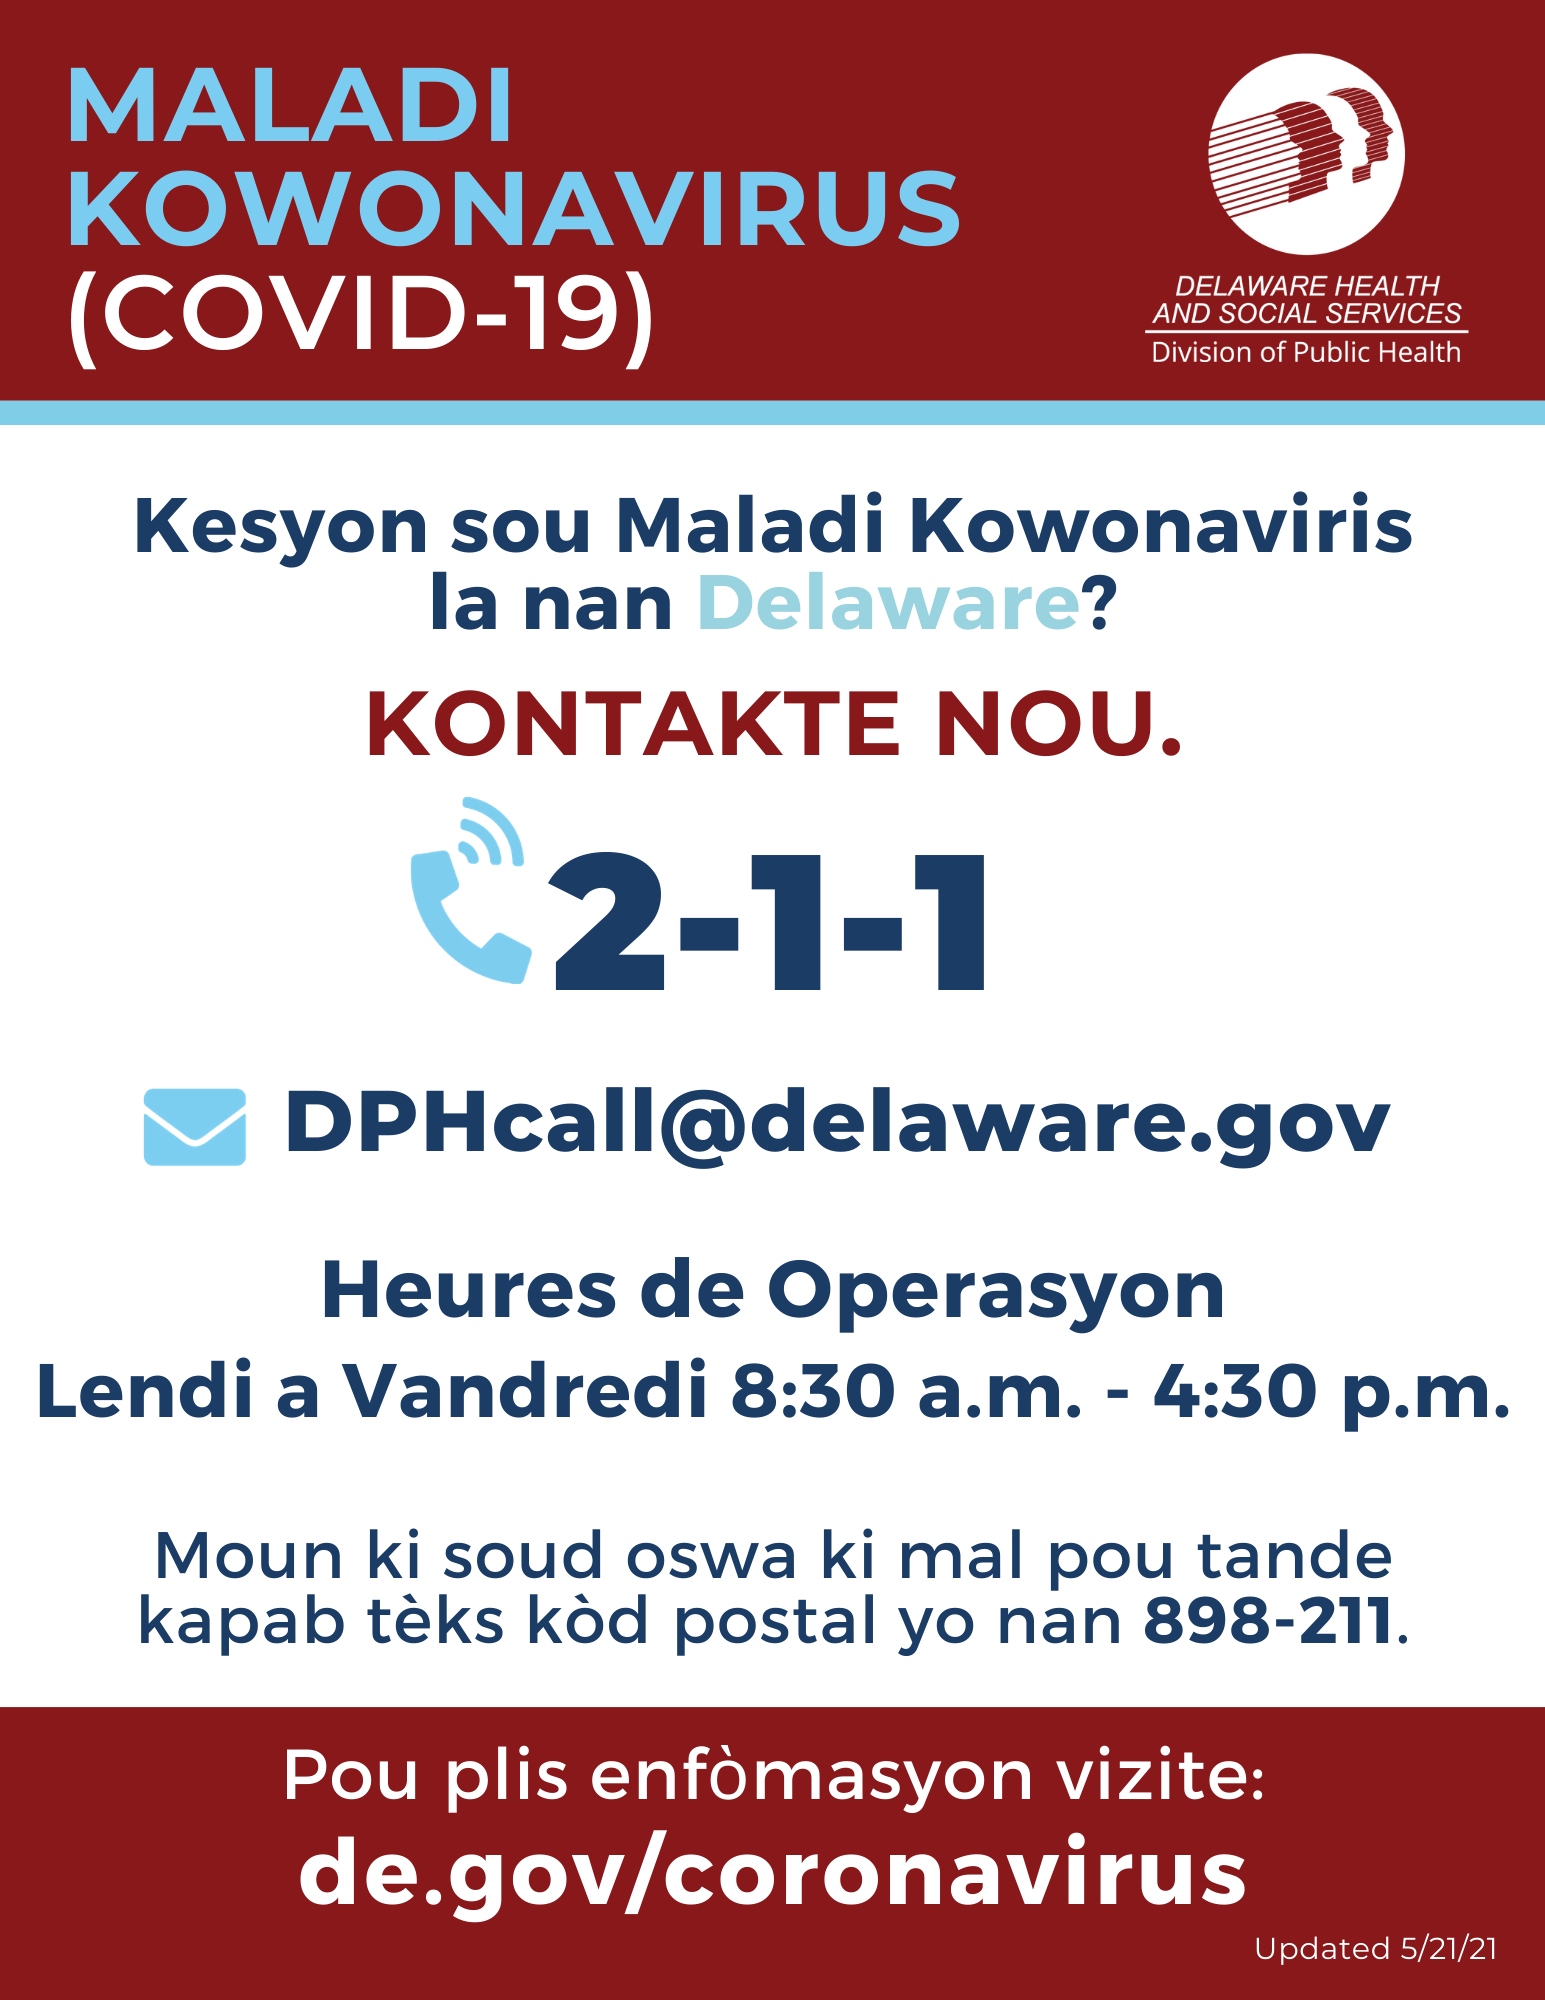 Delaware Public Health Call Center Poster. Call 2-1-1 for information on Coronavirus. Monday through Friday 8:30am to 4:30pm